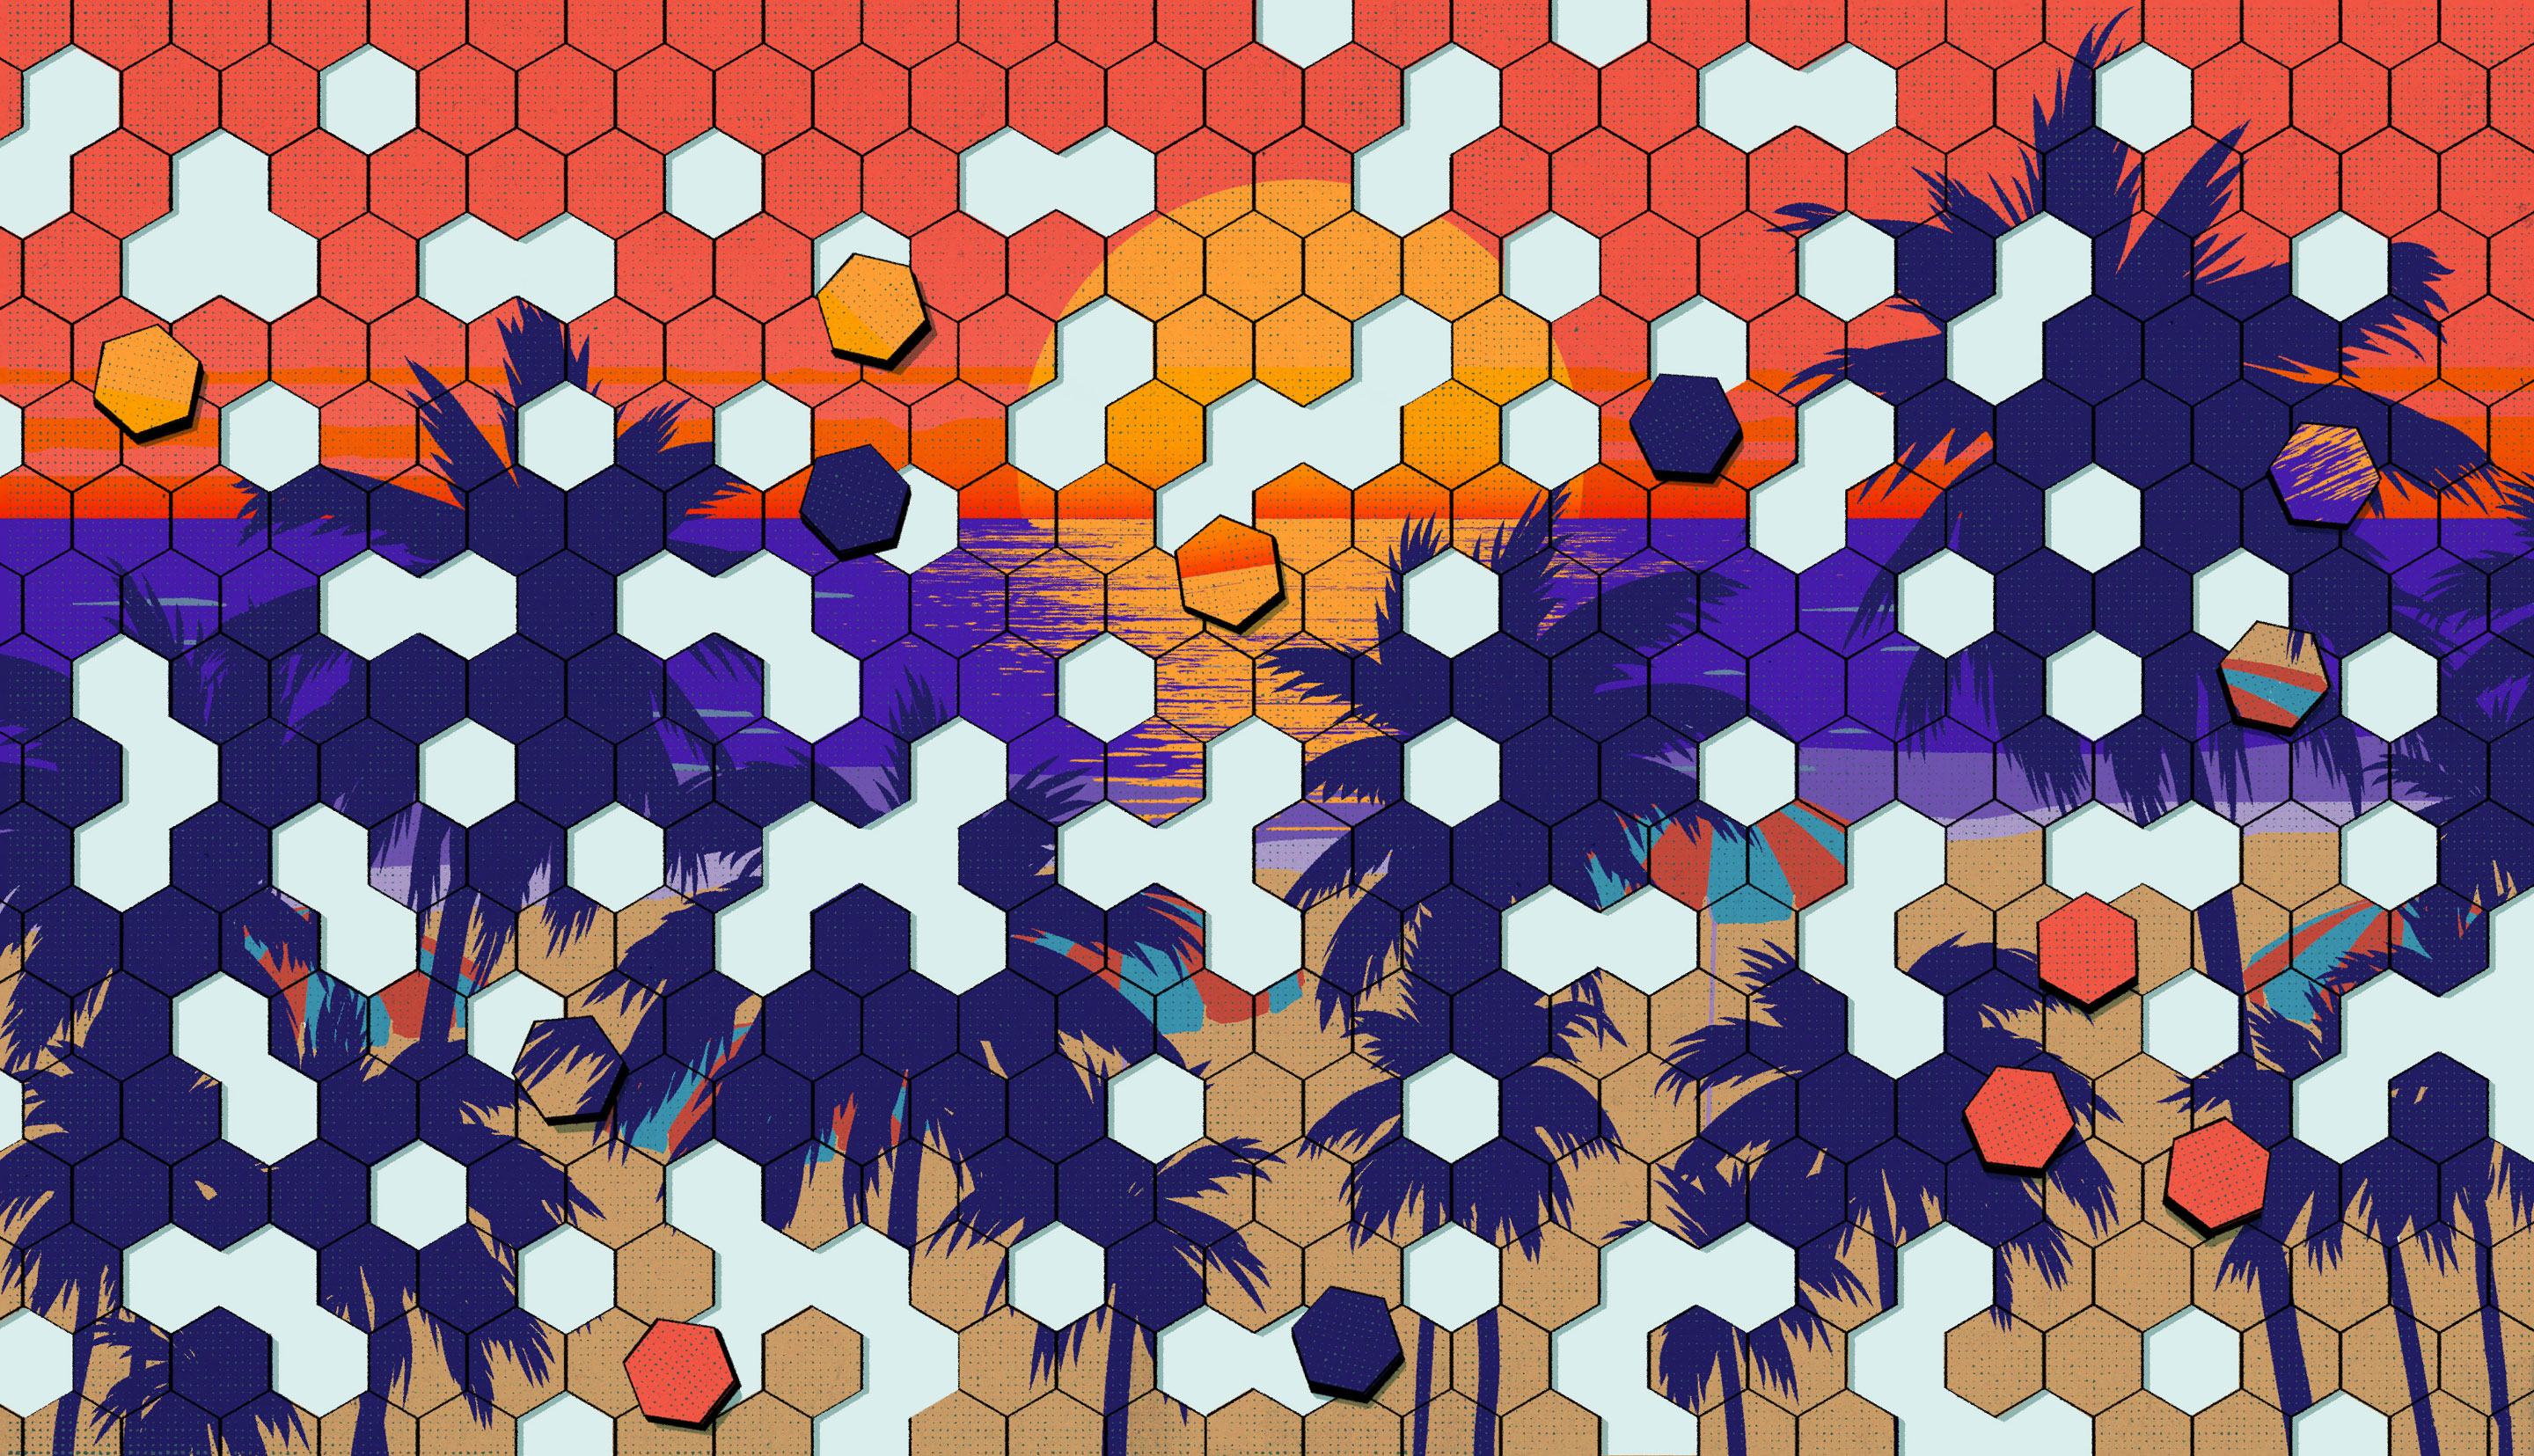 An illustration of a sunset beach scene turned into a puzzle.